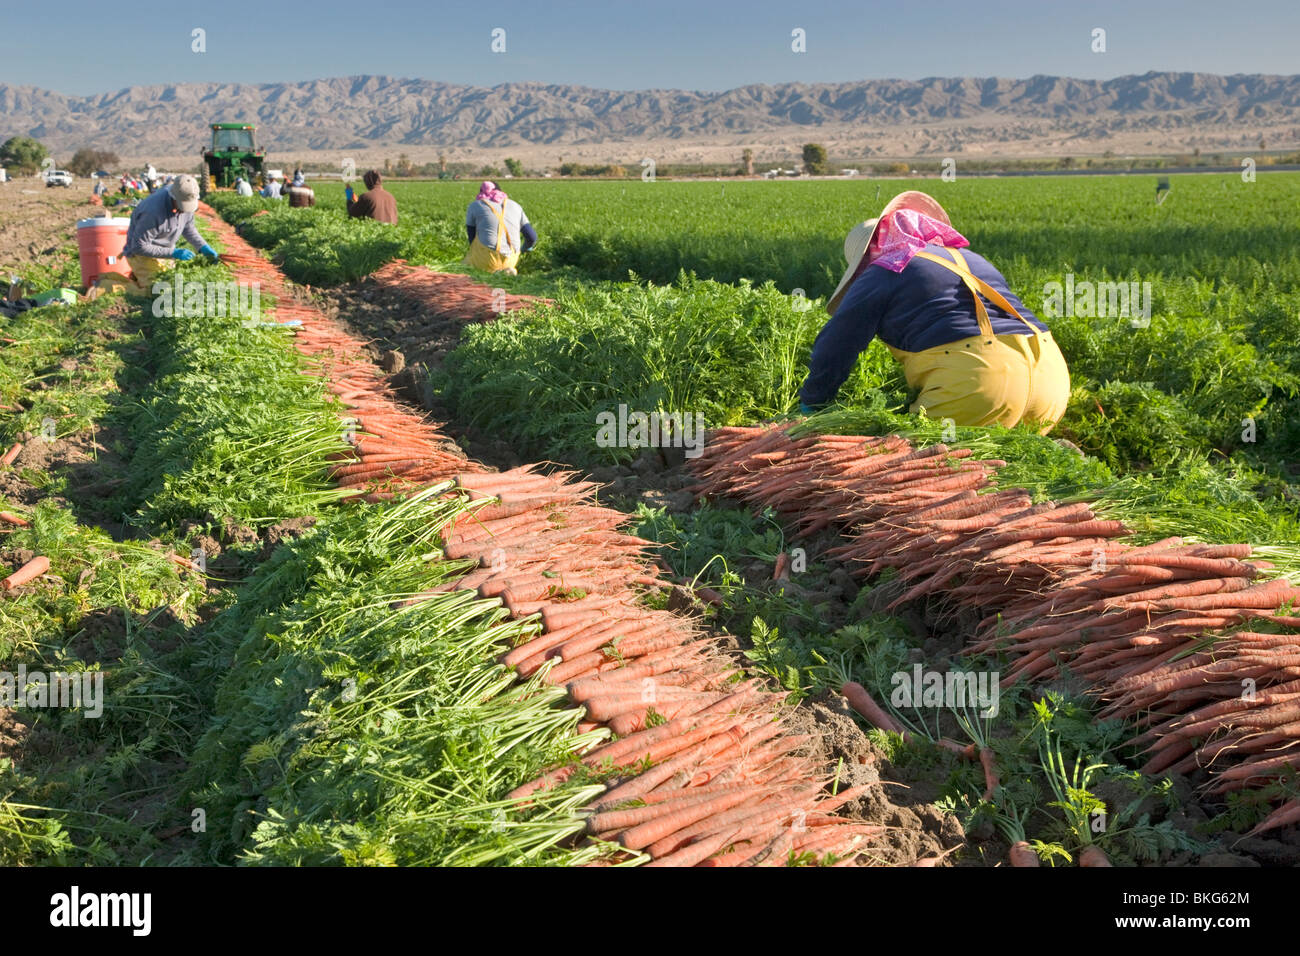 Carrot  'Daucus carota' harvest, workers lifting. - Stock Image